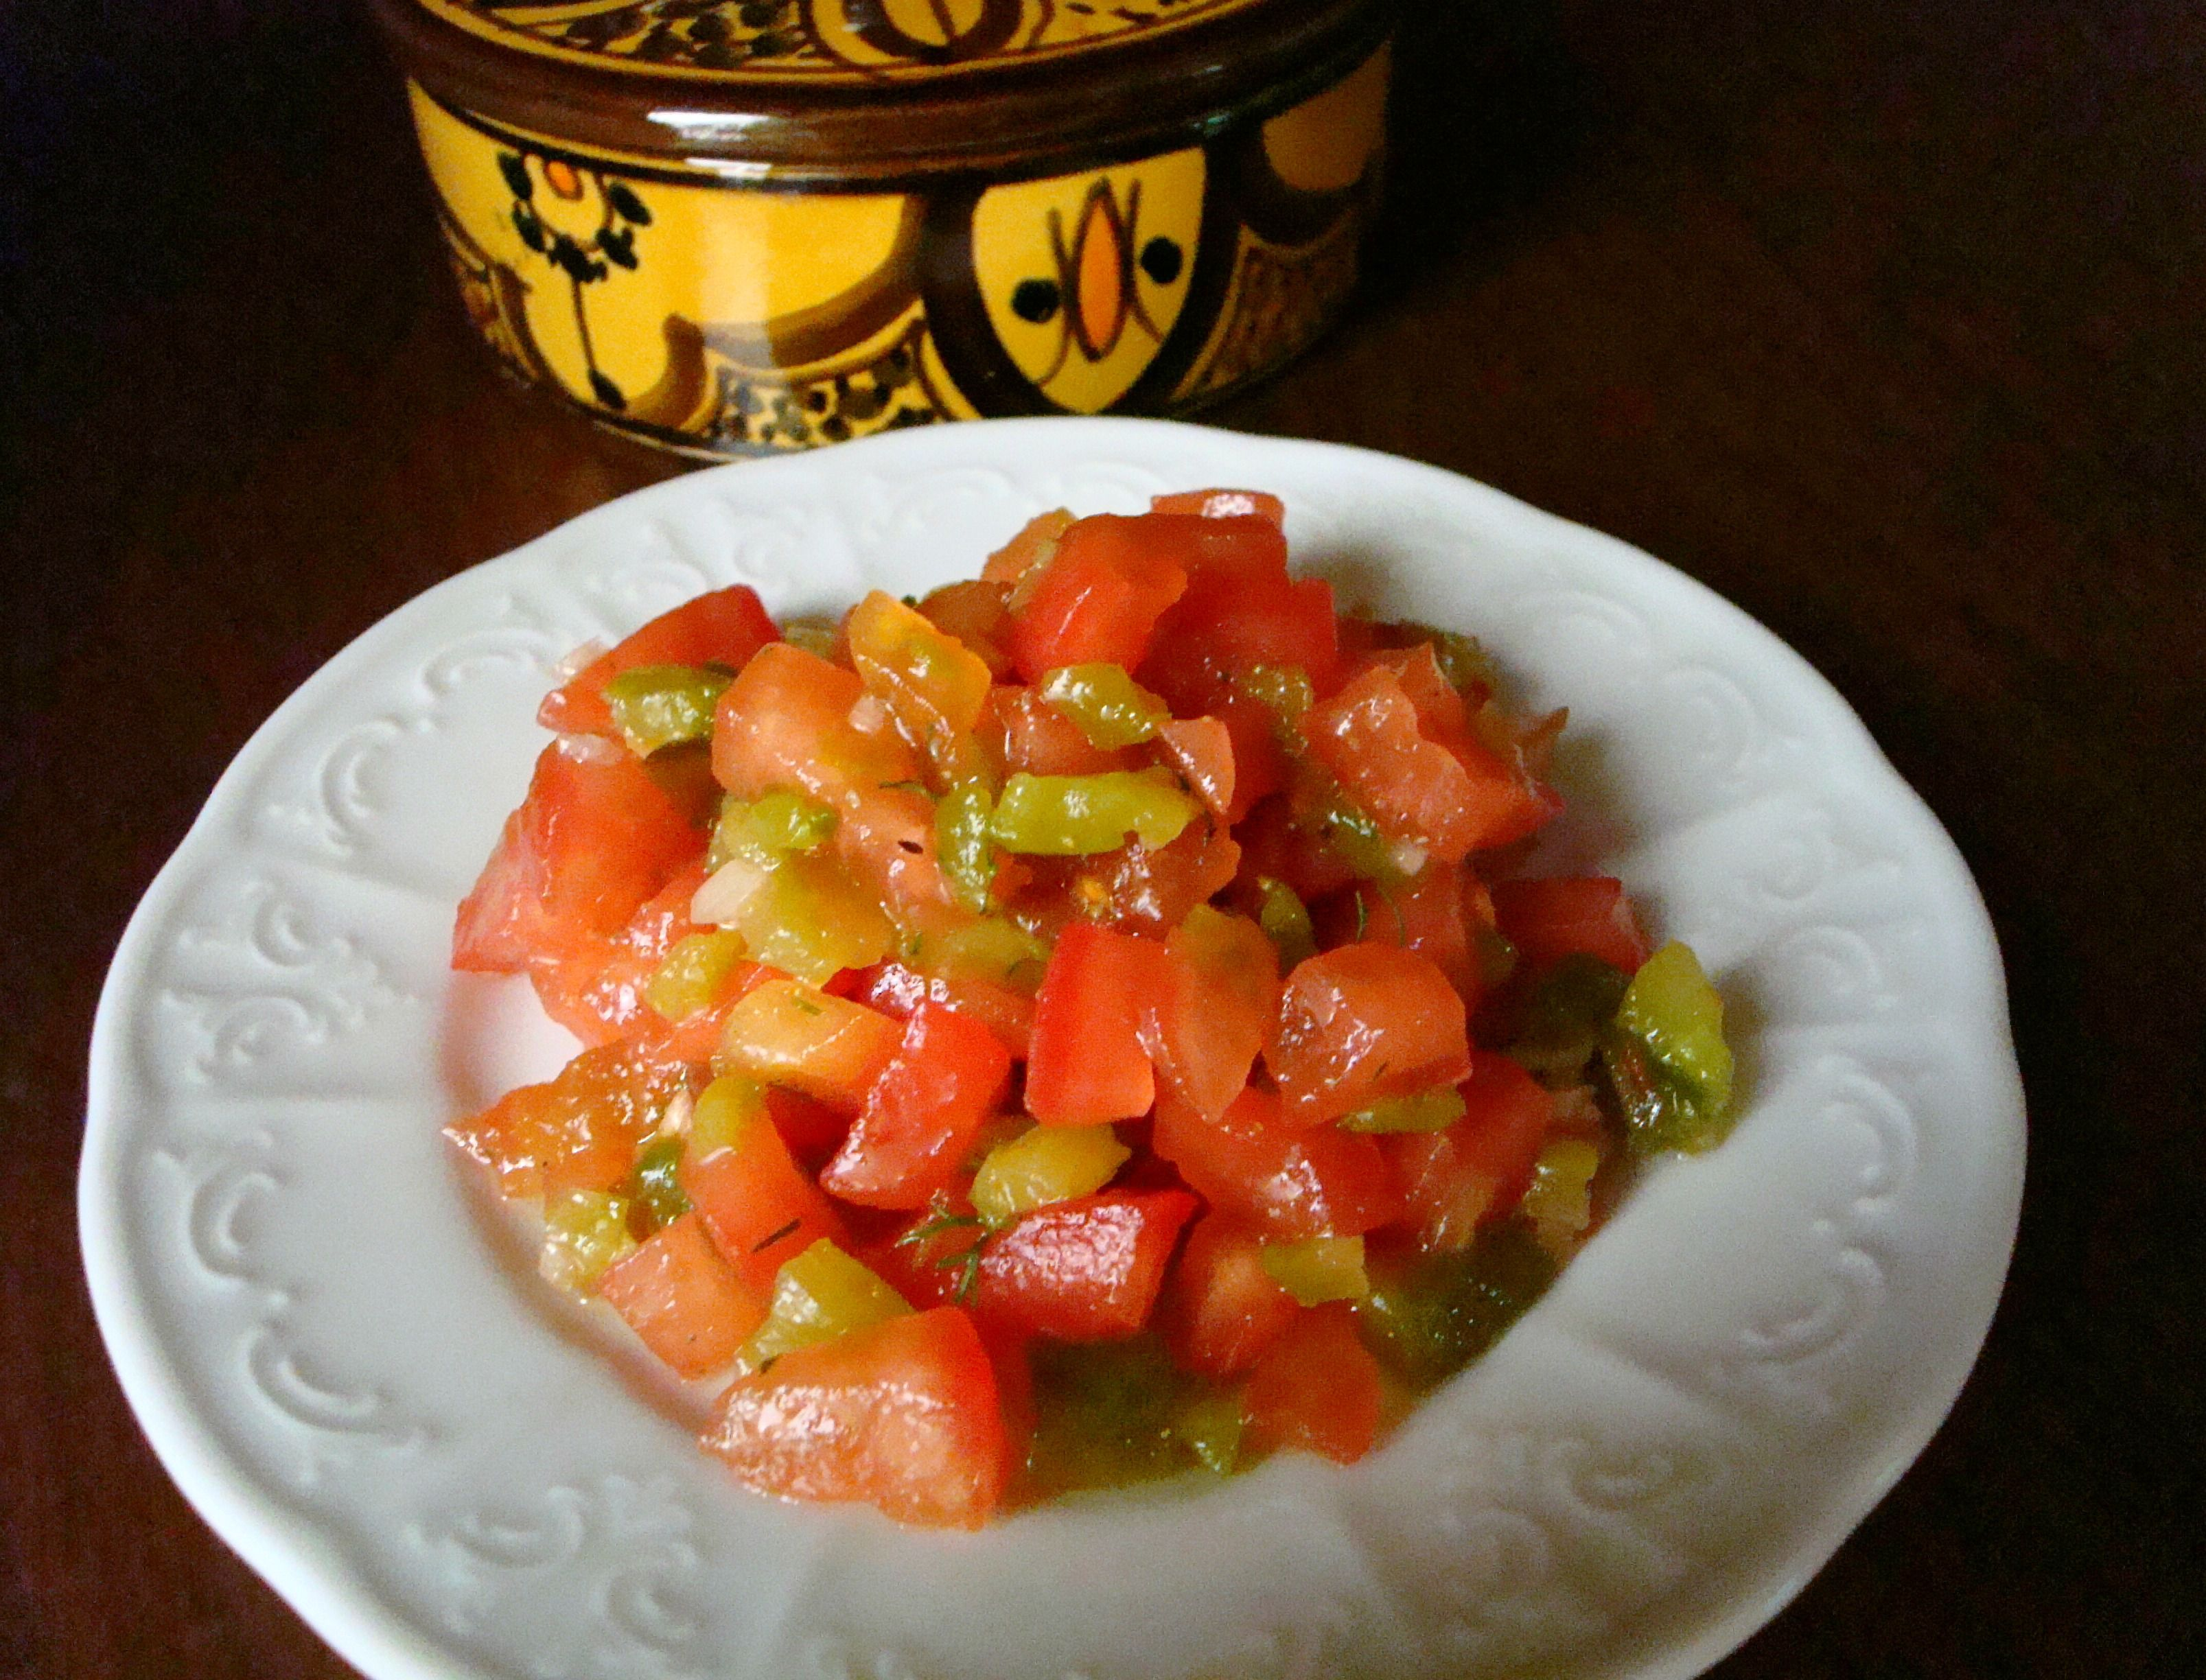 Morocco's Famous Salsa-Like Salad With Tomatoes and Roasted Peppers